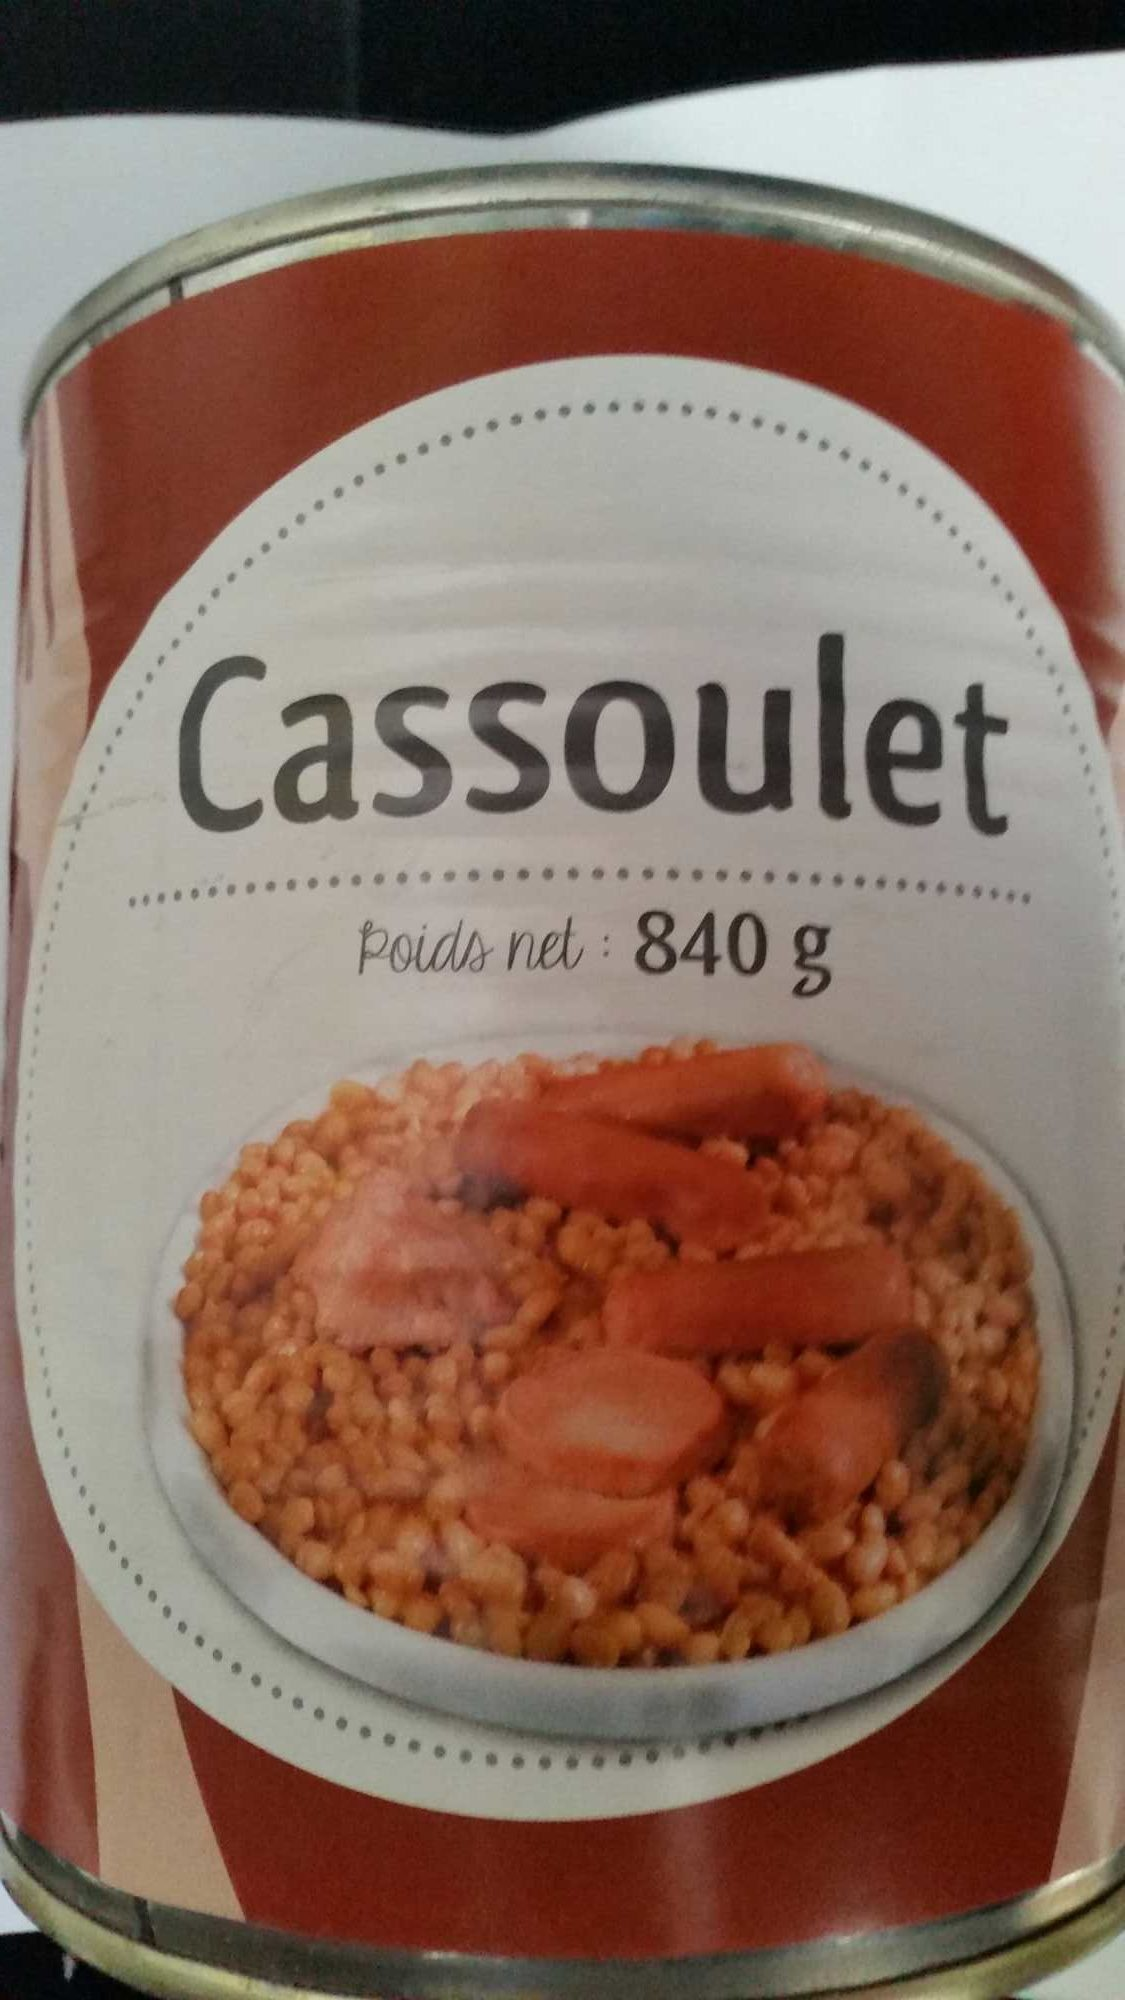 Cassoulet - Product - fr